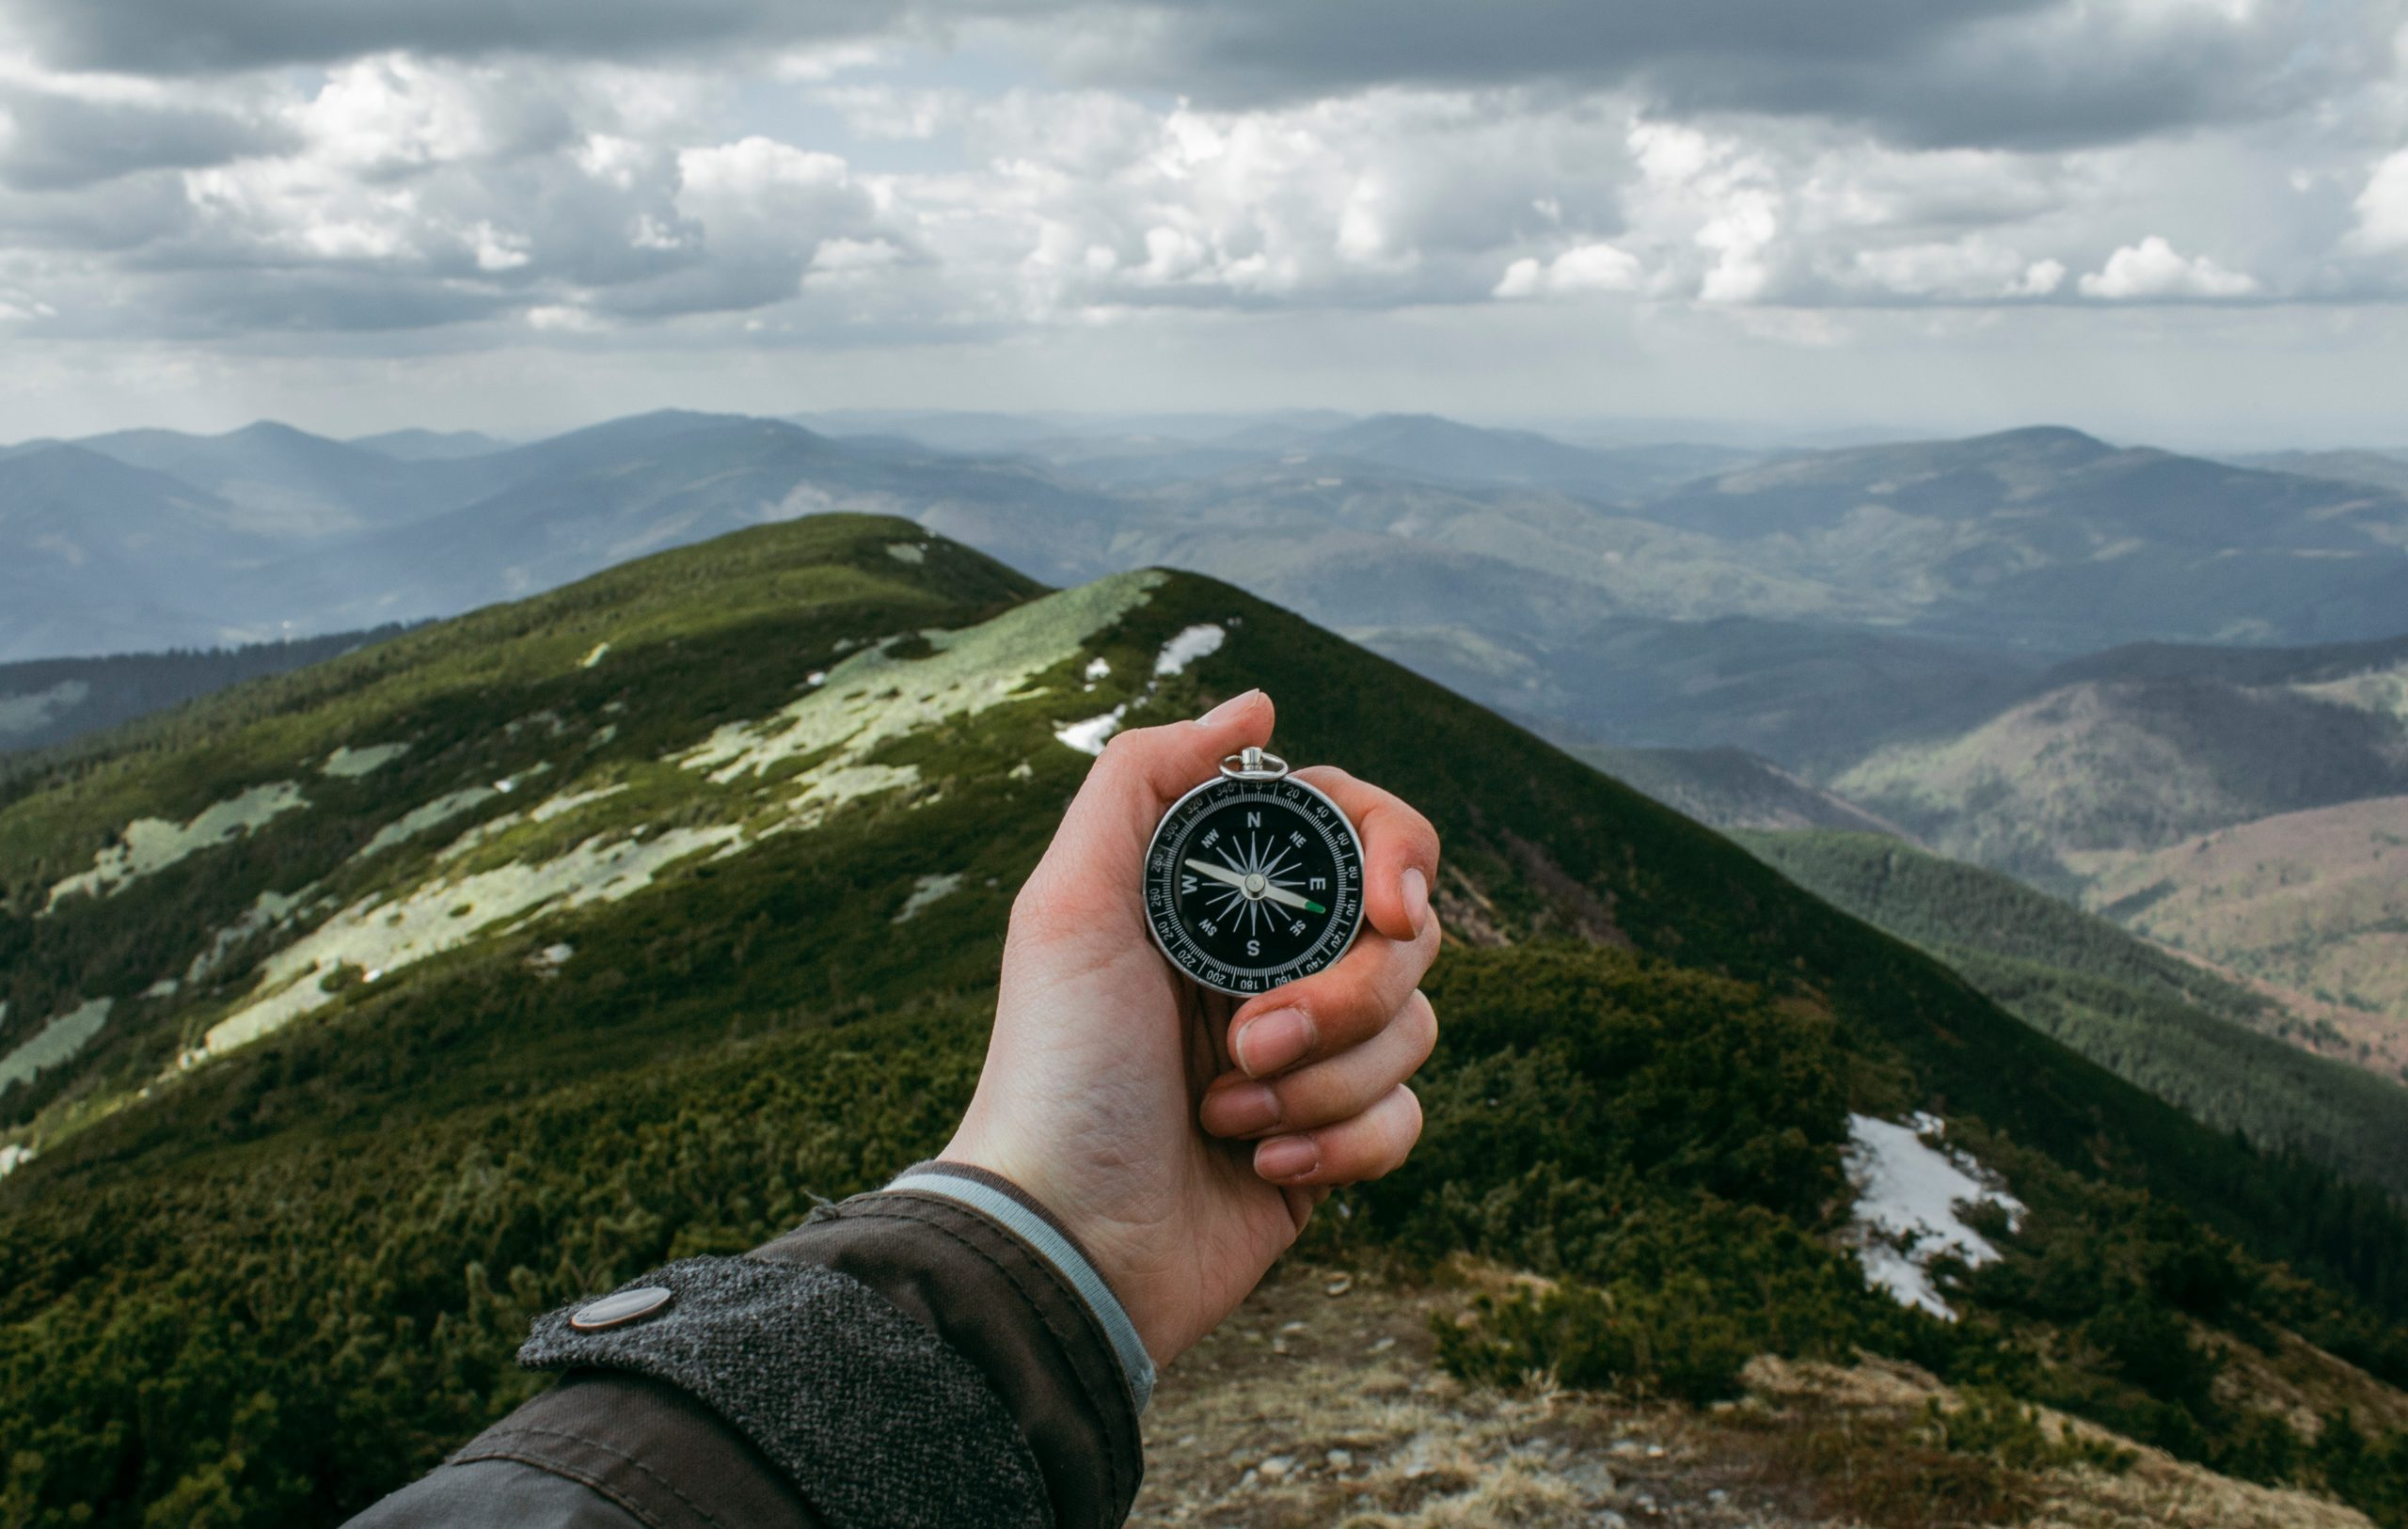 Hand holding a compass with green mountains in background